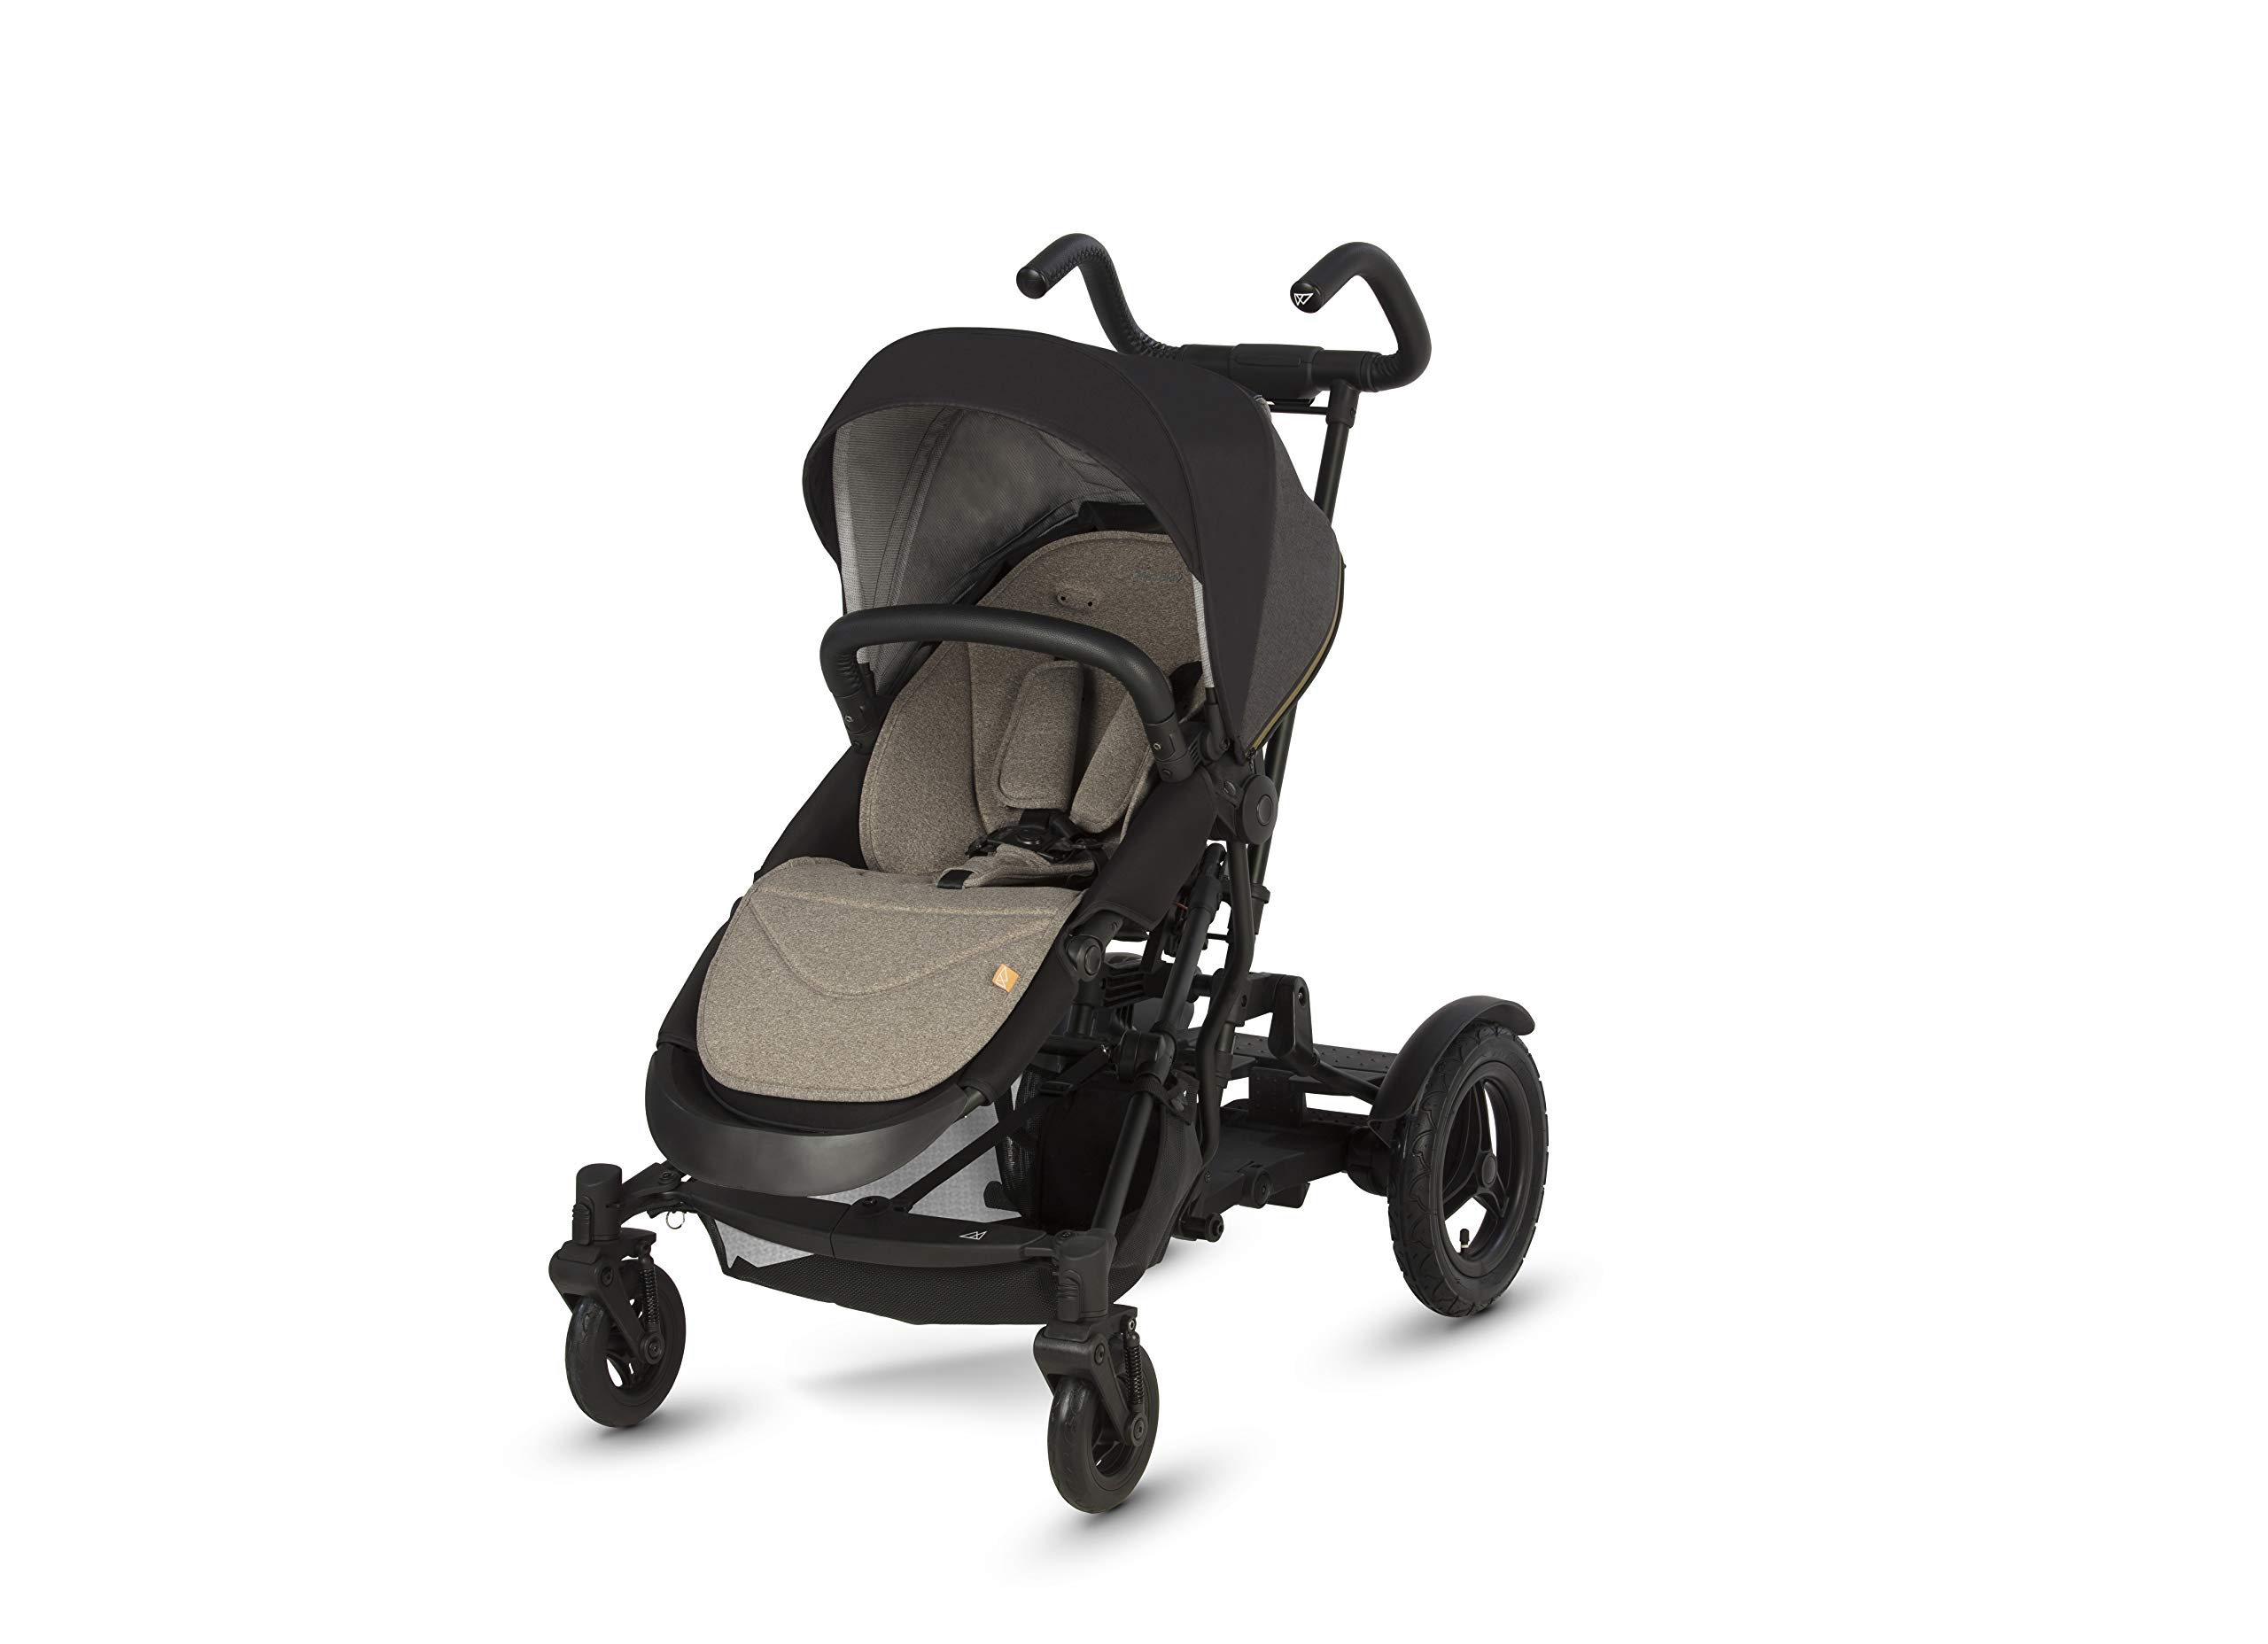 Micralite TwoFold Pushchair - Carbon. Suitable from 6 Months to 4 Years. Add Carrycot to Convert to Travel System Micralite QUICK FOLD - The TwoFold folds into one piece, with one movement. Once folded it free stands for ease of storage at home or out and about. To transport when not in use simply drag it along behind you. ALL-TERRAIN WHEELS - Large air filled back tyres, high mud guards and great ground clearance mean you can still go anywhere even with two in tow. You don't have to worry about getting a puncture either as the pneumatic tyres are lined with Kevlar - the same fibre used in bullet proof vests! WEATHERPROOF FABRICS - Dressed with signature Micralite high quality weatherproof fabrics, the hood of the TwoFold turns water just aswell as it deflects the sun's harmful rays. We also include a storm cover for more extreme weather - so nothing can stop you and your little one from getting out there. 2